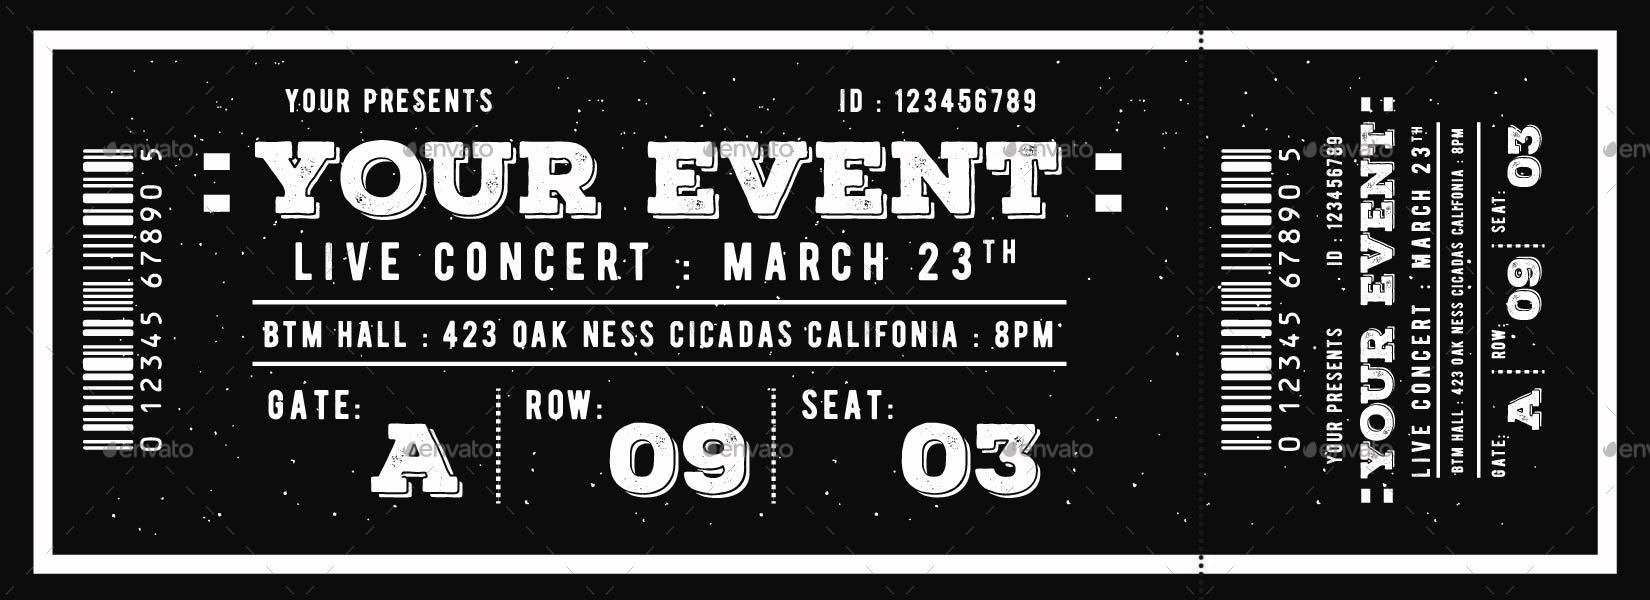 vintage event ticket example